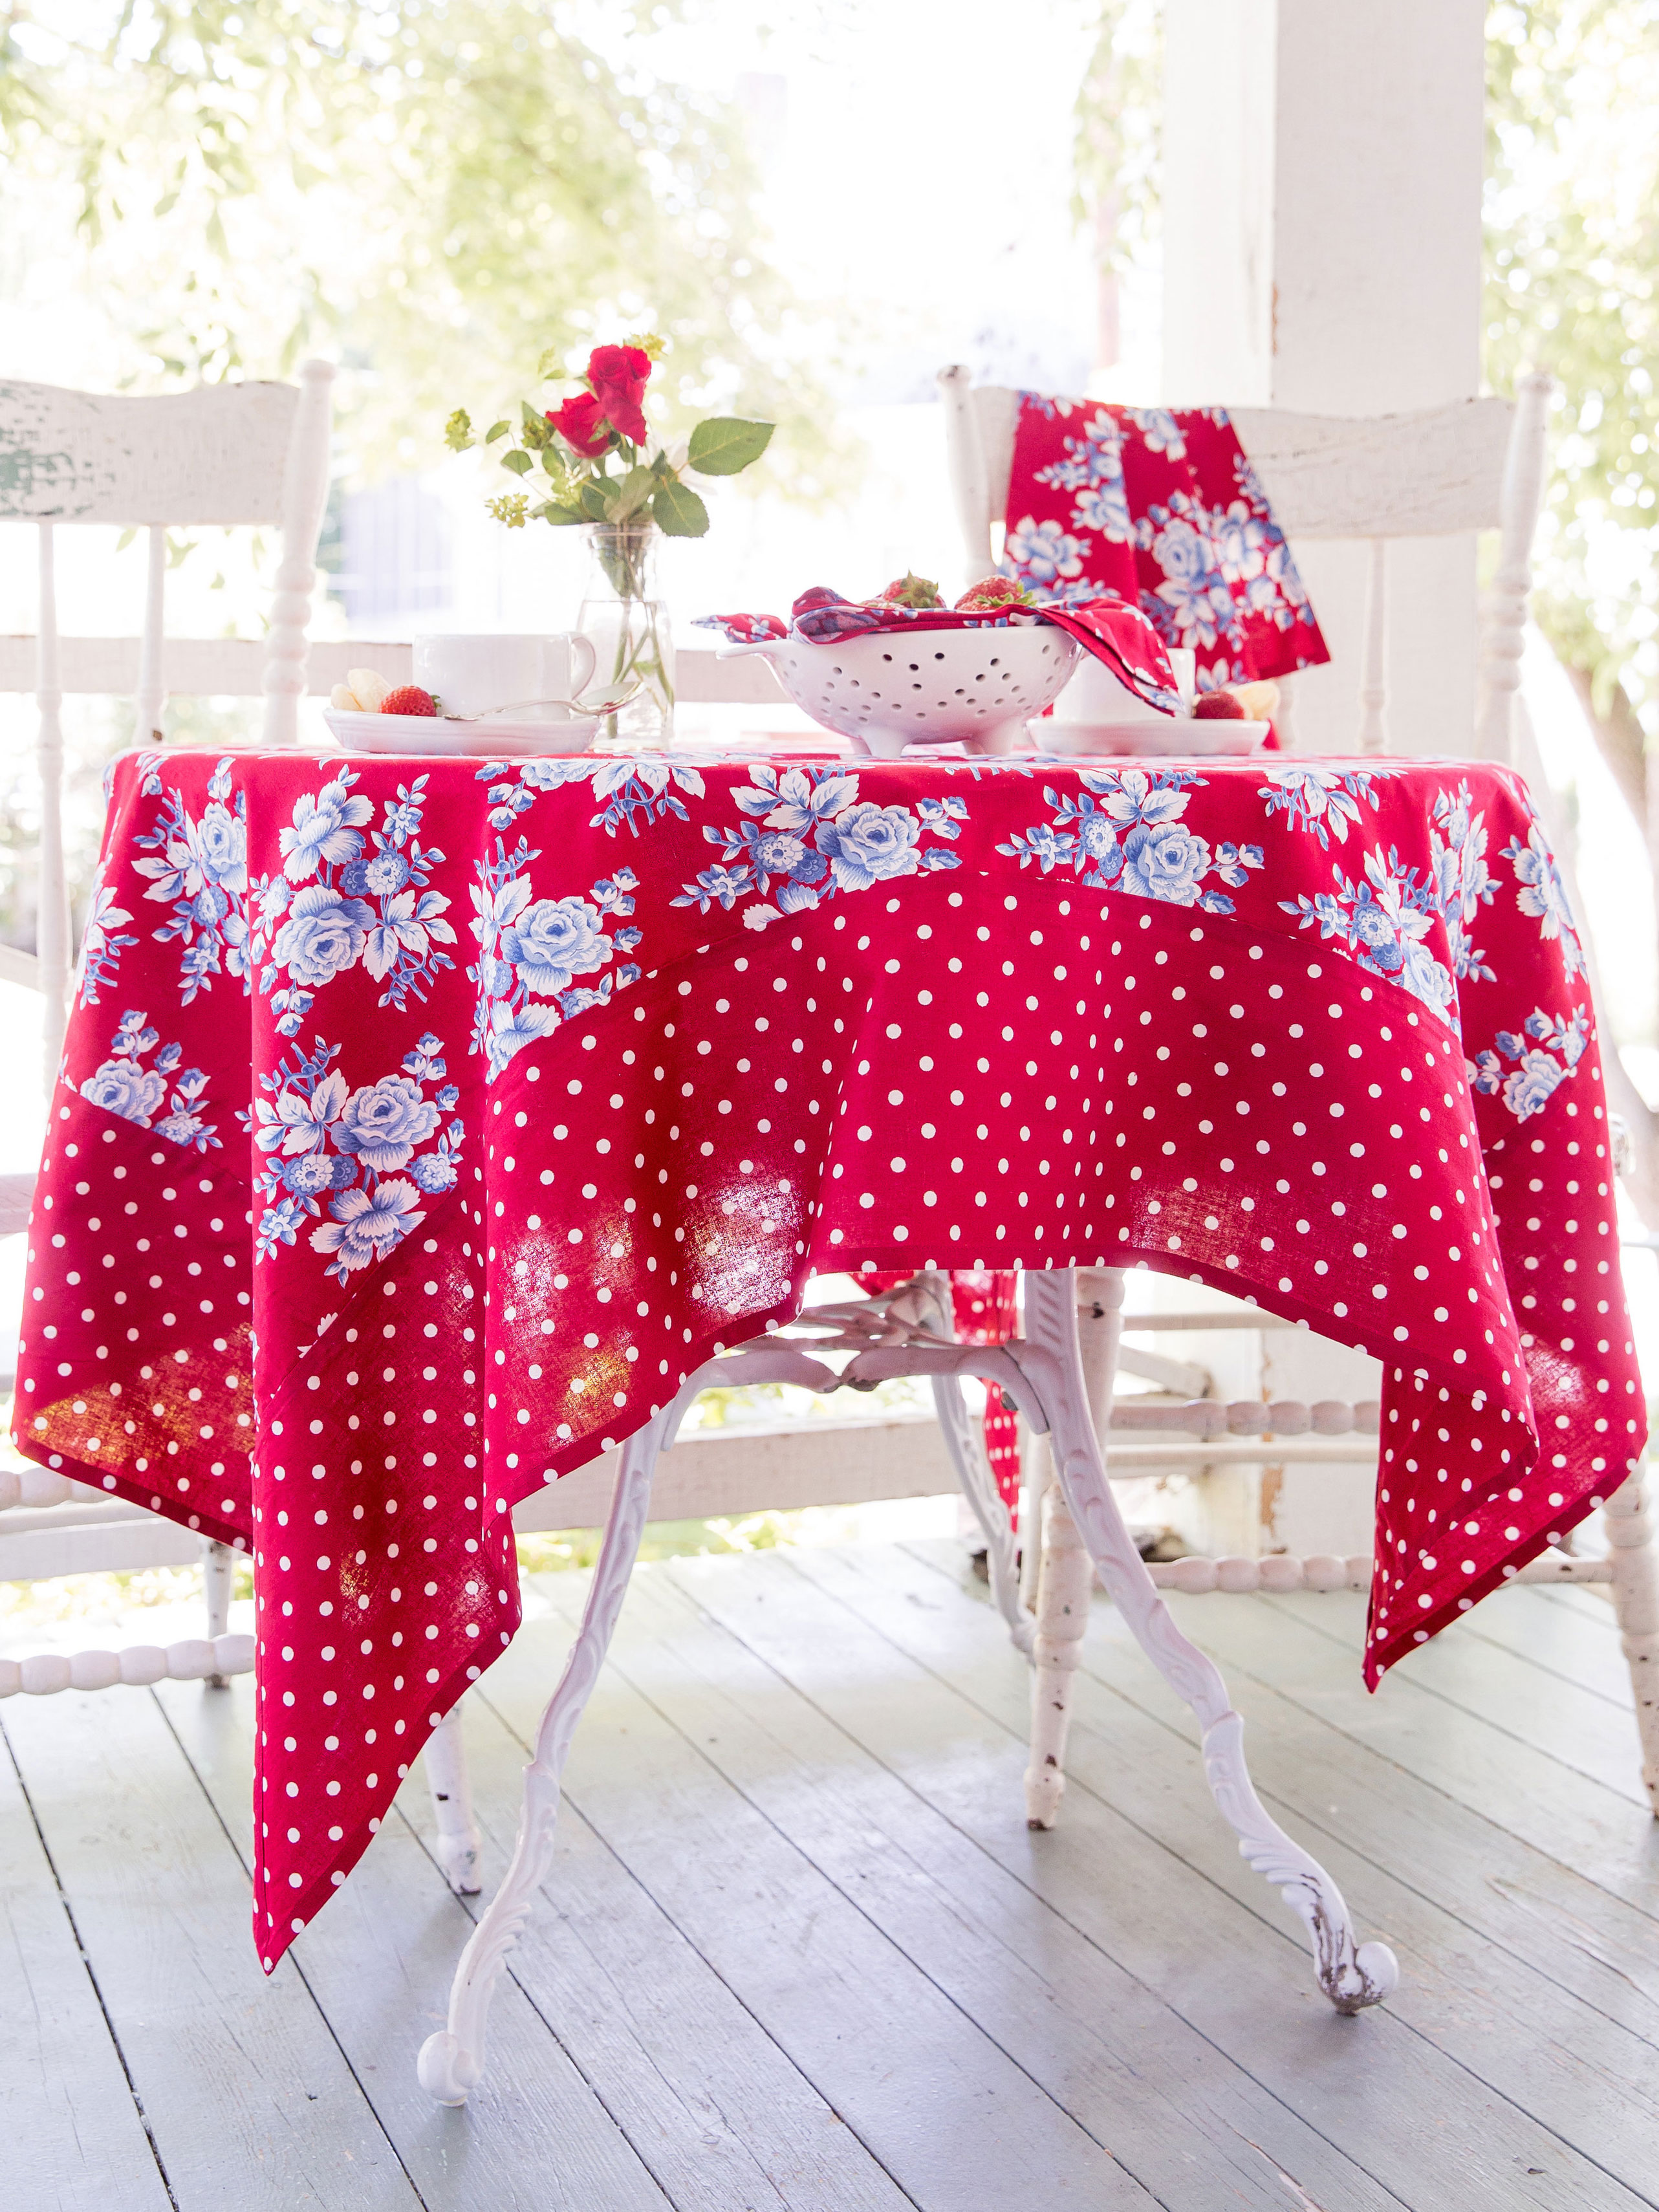 Willa Rose Tablecloth  Linens & Kitchen, Tablecloths. Brown White Kitchen Designs. Kitchen Design Center Sacramento. Yellow Kitchen Design. Picture Of Small Kitchen Designs. Bhg Kitchen Design. Kitchen Design Courses. Exclusive Kitchen Designs. Design For Kitchen Island